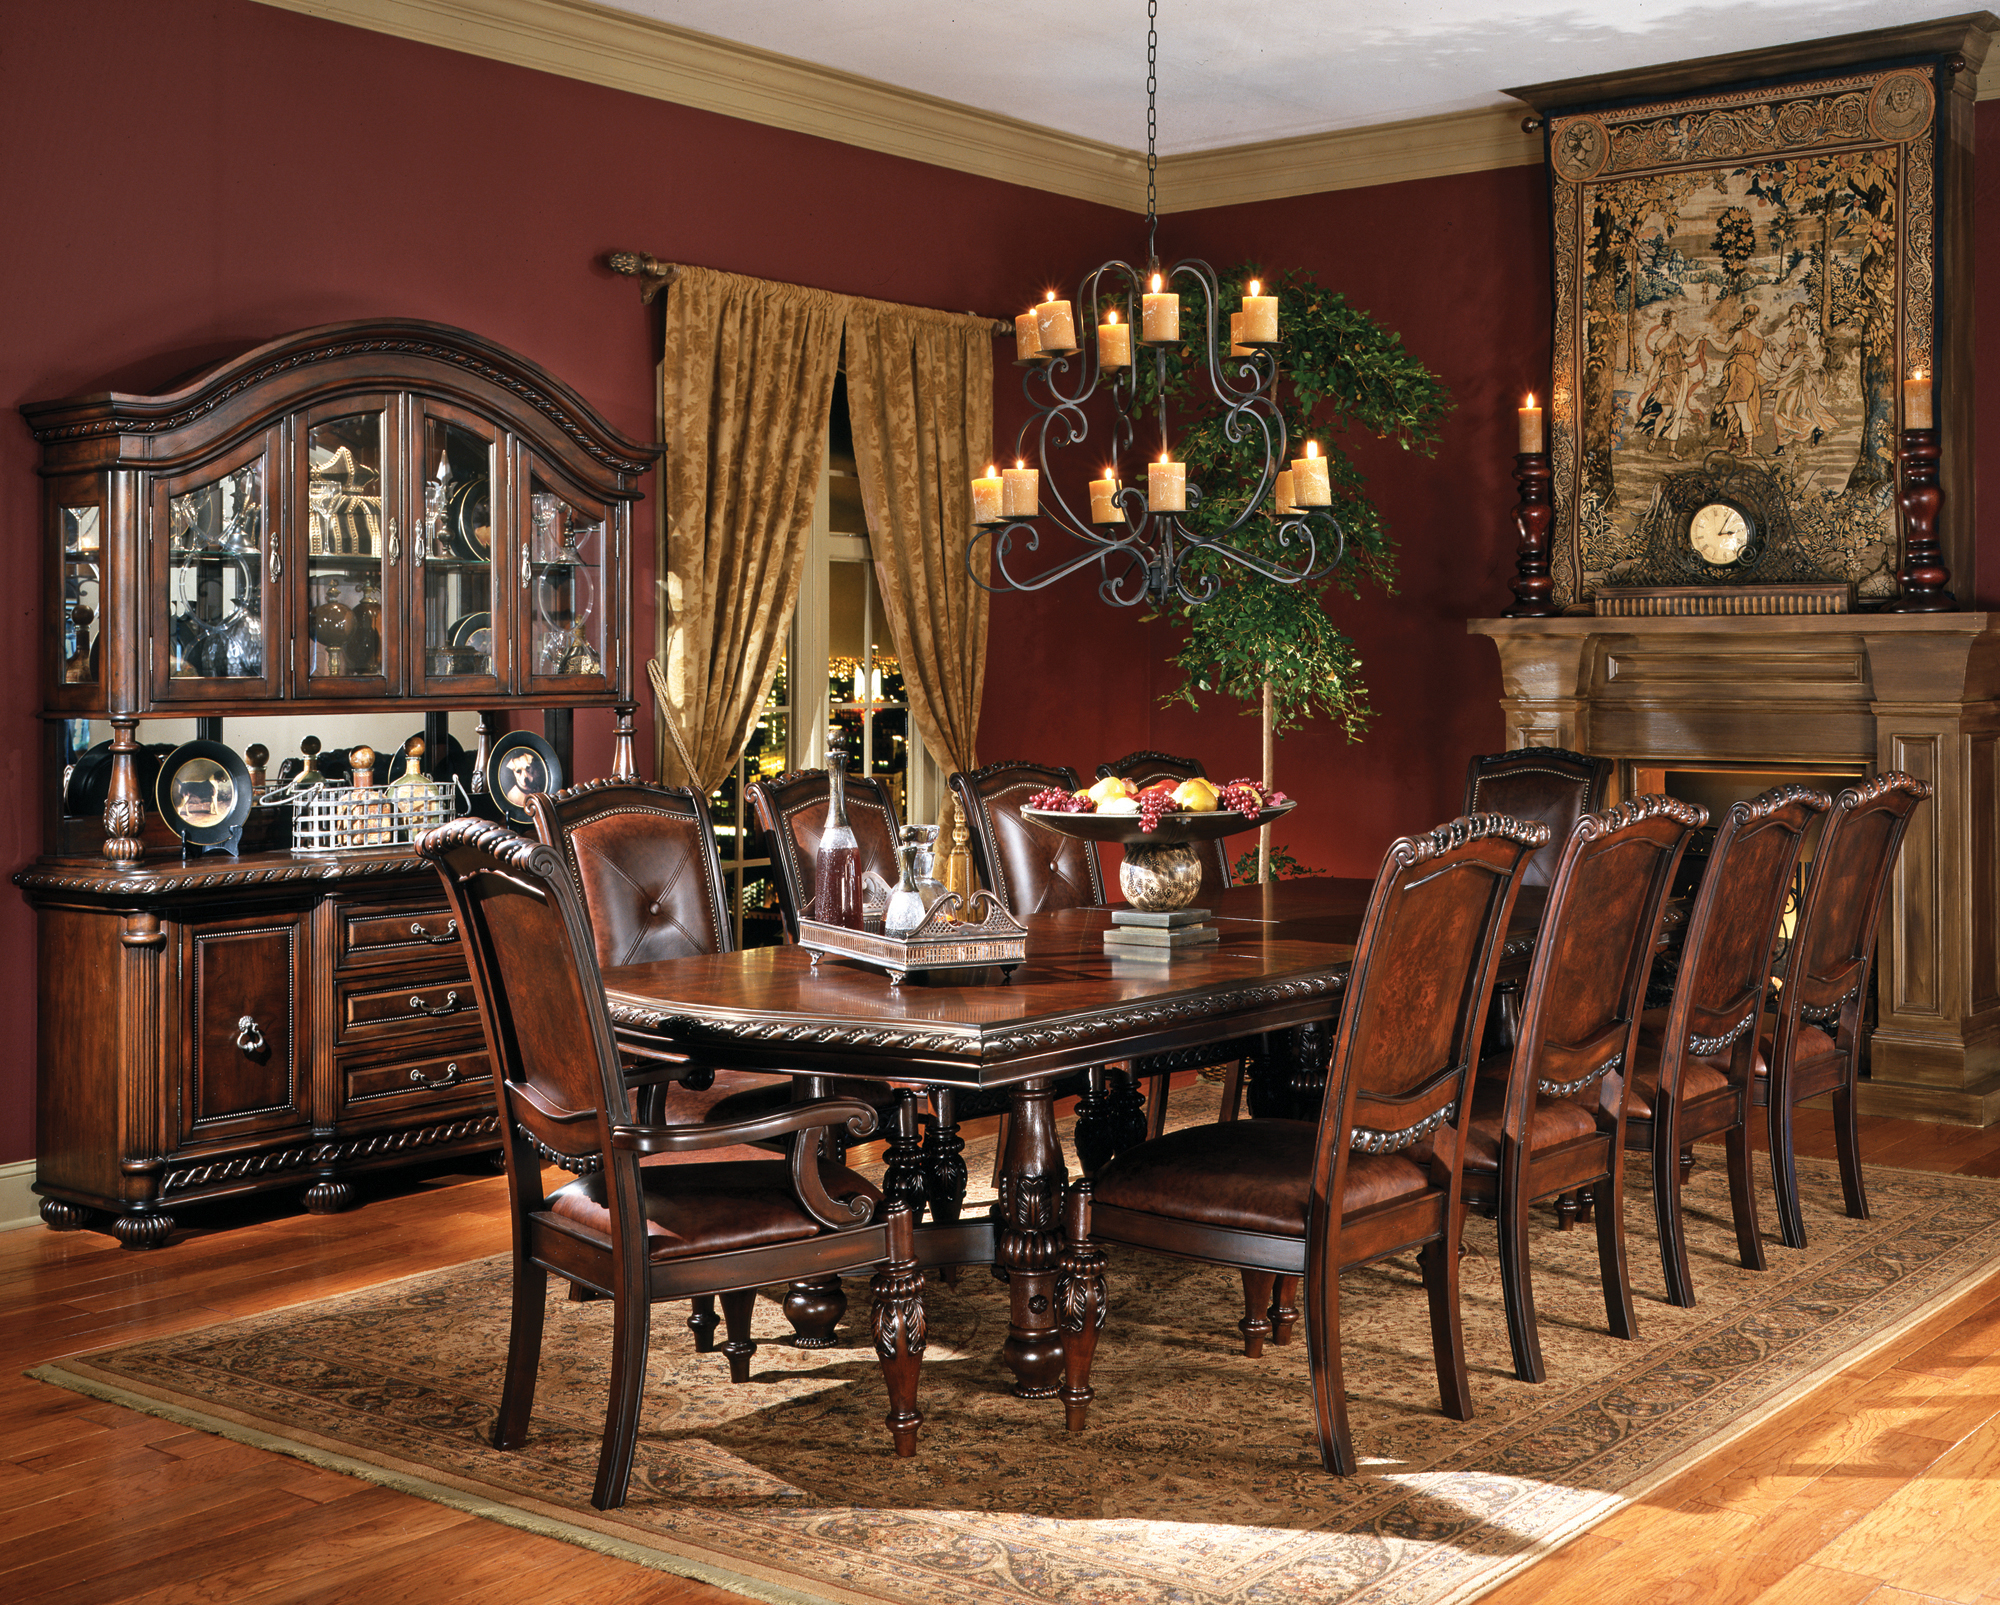 Big Dining Room Table 16 Home Ideas  Enhancedhomesorg. Cafe Pictures For Kitchen. American Kitchen Recipes. Shaker White Kitchen Cabinets. Under Kitchen Cabinet Led Lighting. Floors For Kitchens. Wood Burning Kitchen Cook Stoves. Kitchen Appliances Las Vegas. Backdoor Kitchen Friday Harbor